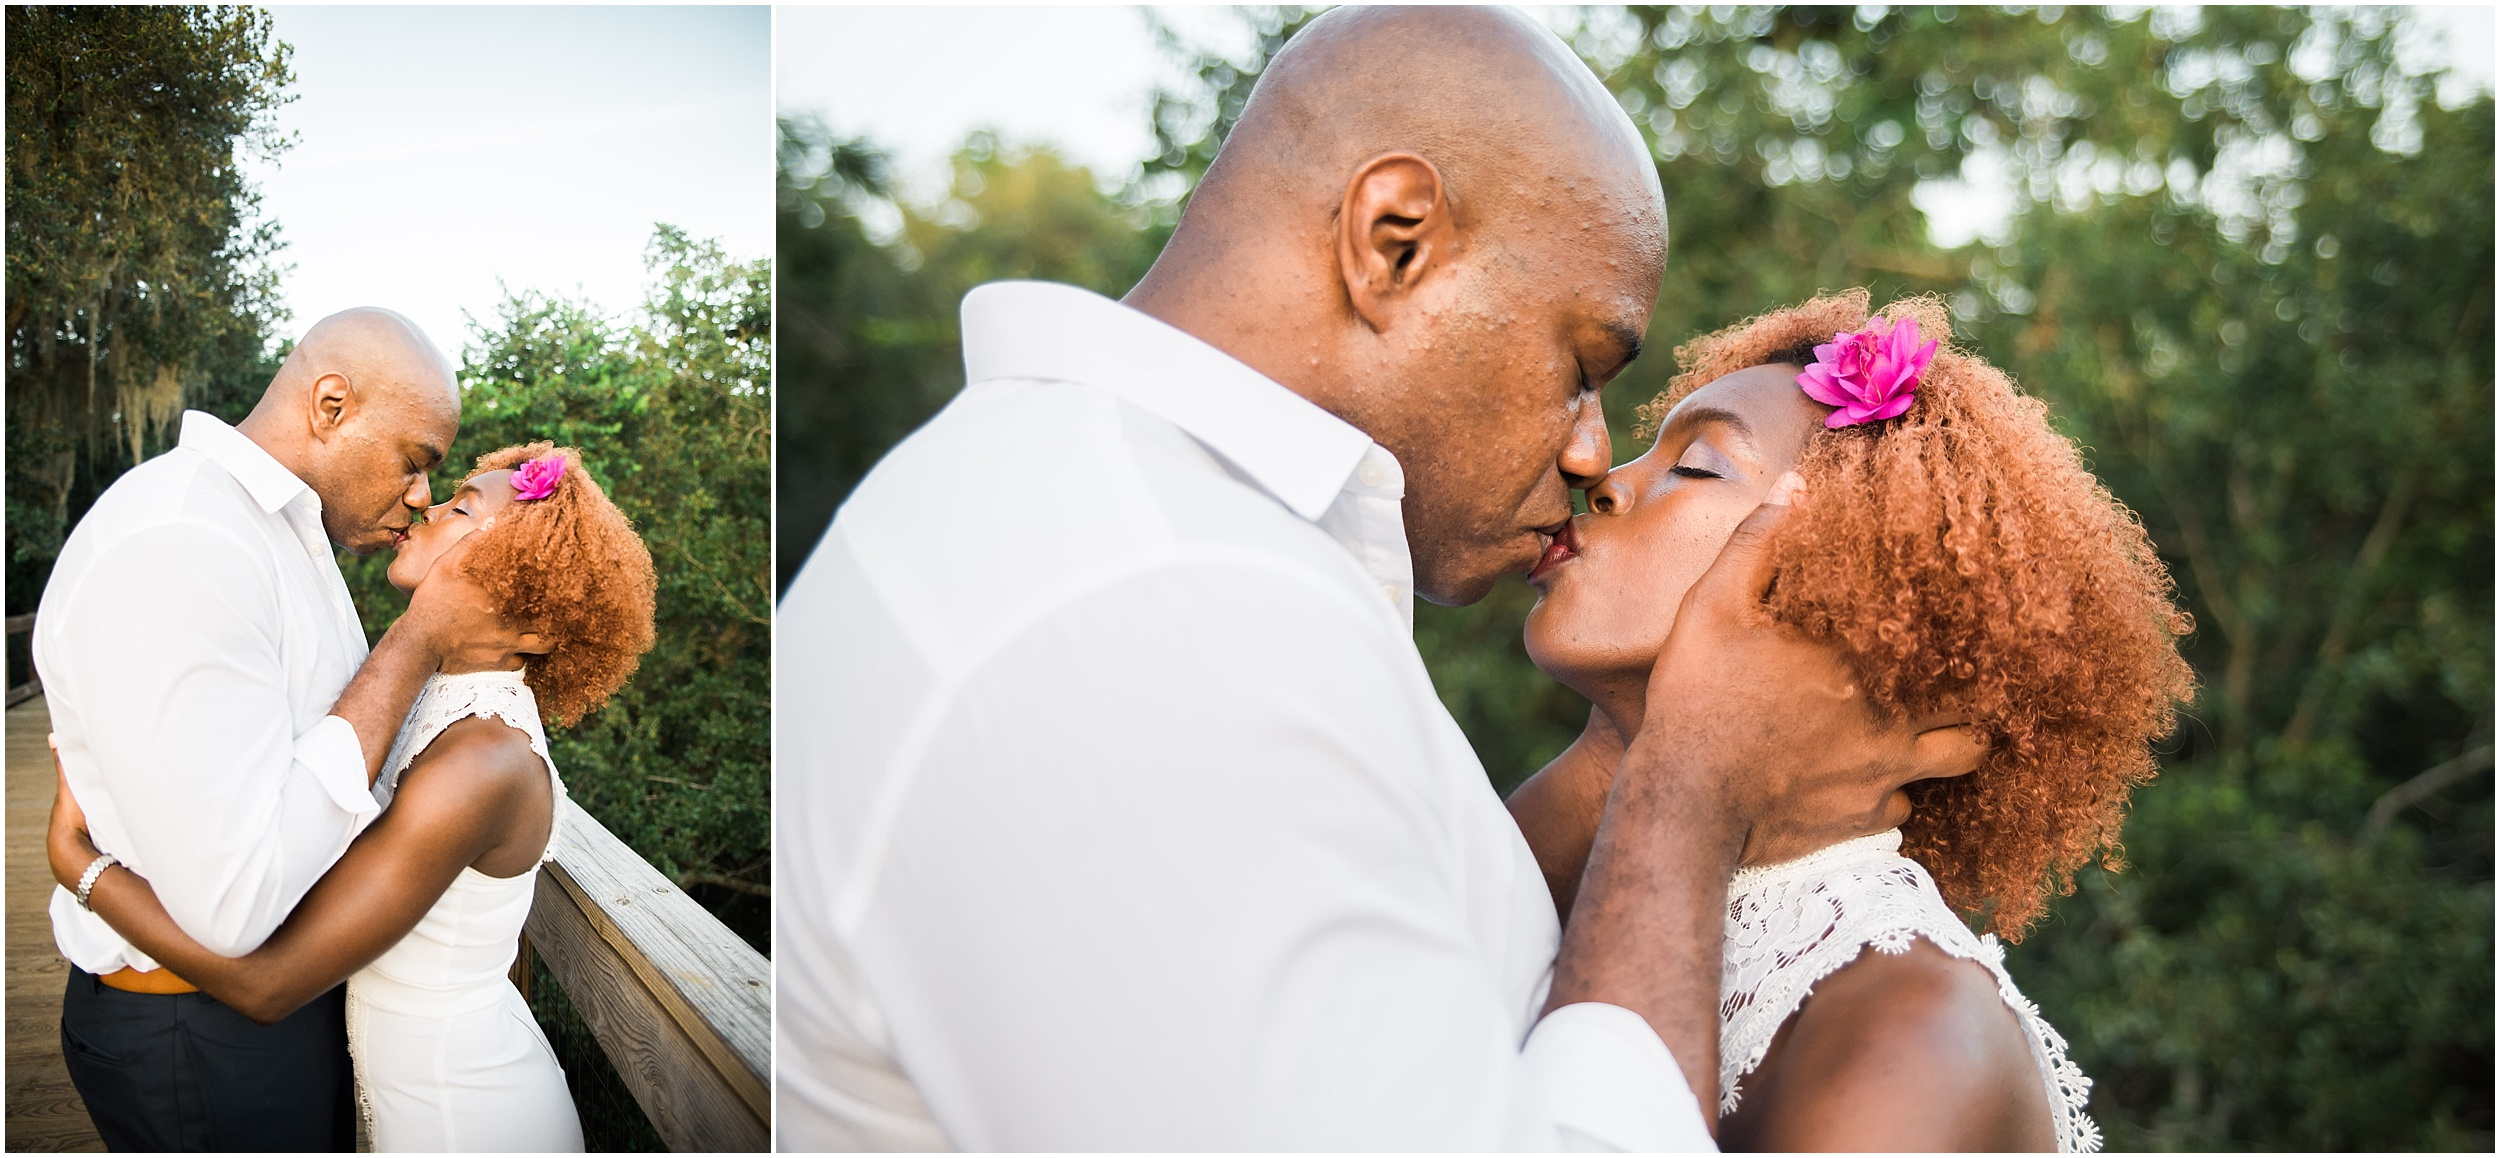 Kacy & Rolanda Vow Renewal at J.R Alford Greenway, Tallahassee FL_0015.jpg